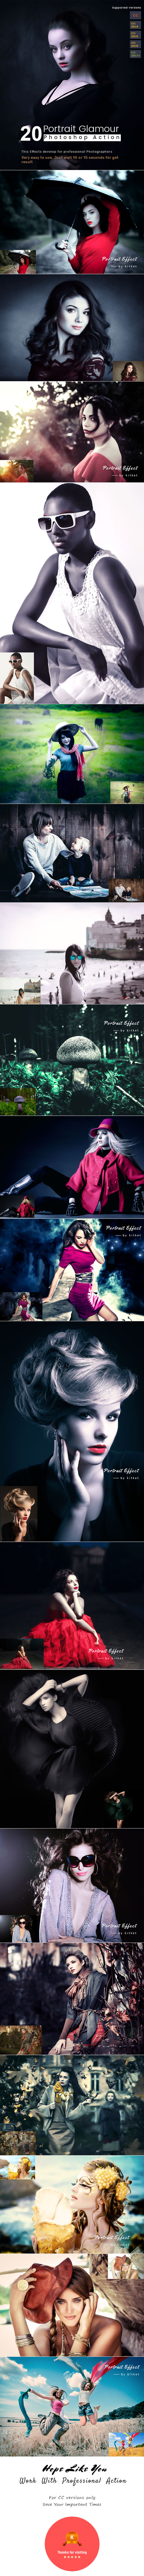 20 Portrait Glamour Action - Photo Effects Actions